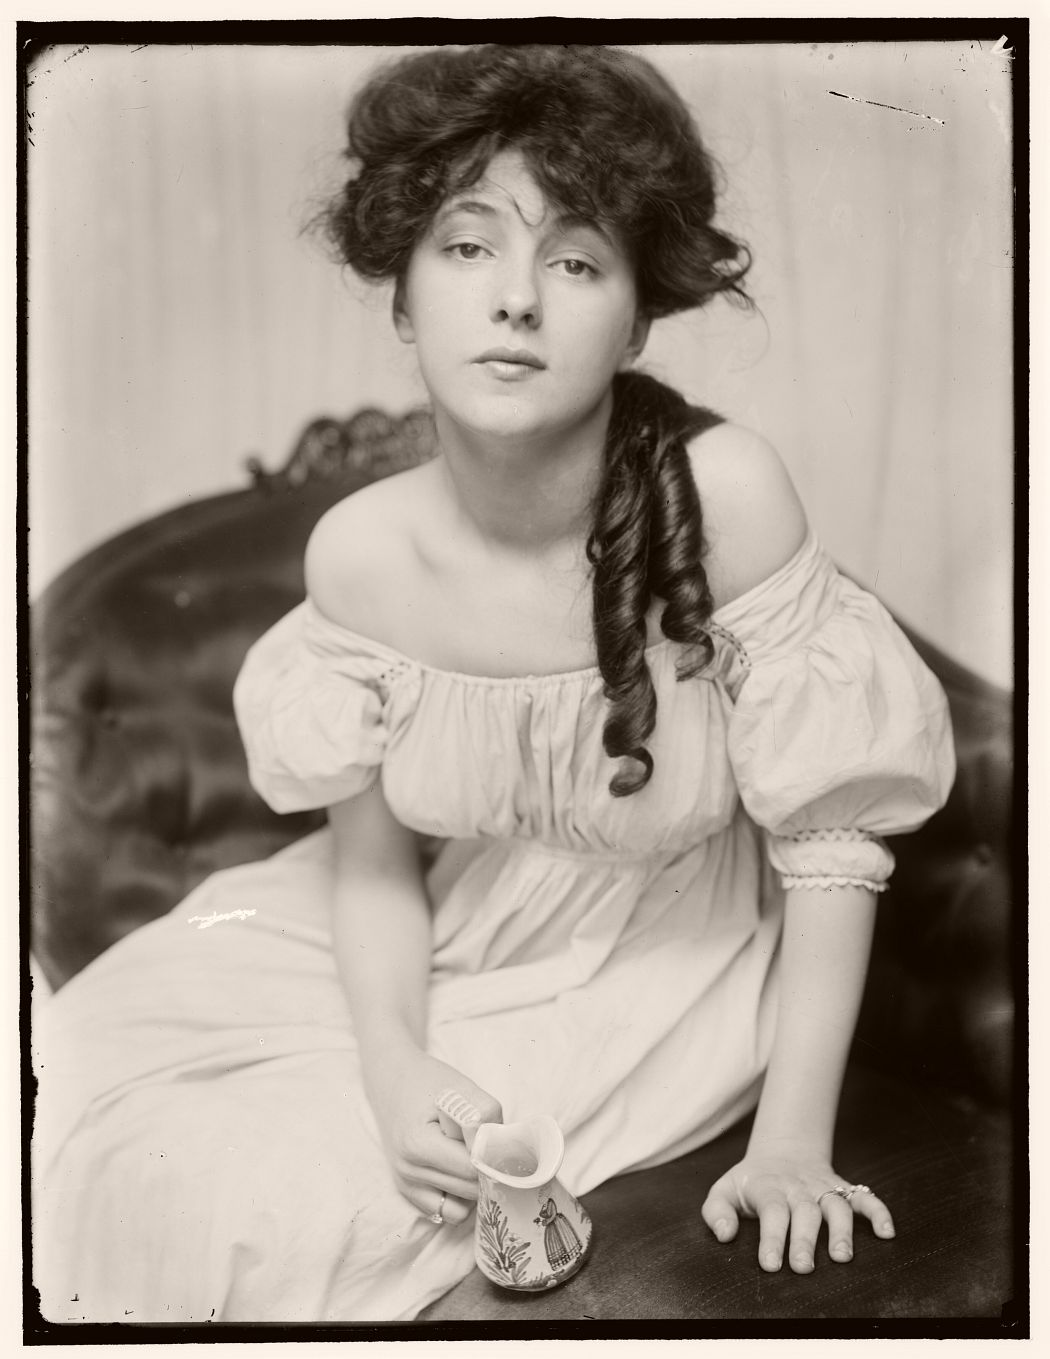 Miss N (Portrait of Evelyn Nesbit), 1903 by Gertrude Käsebier